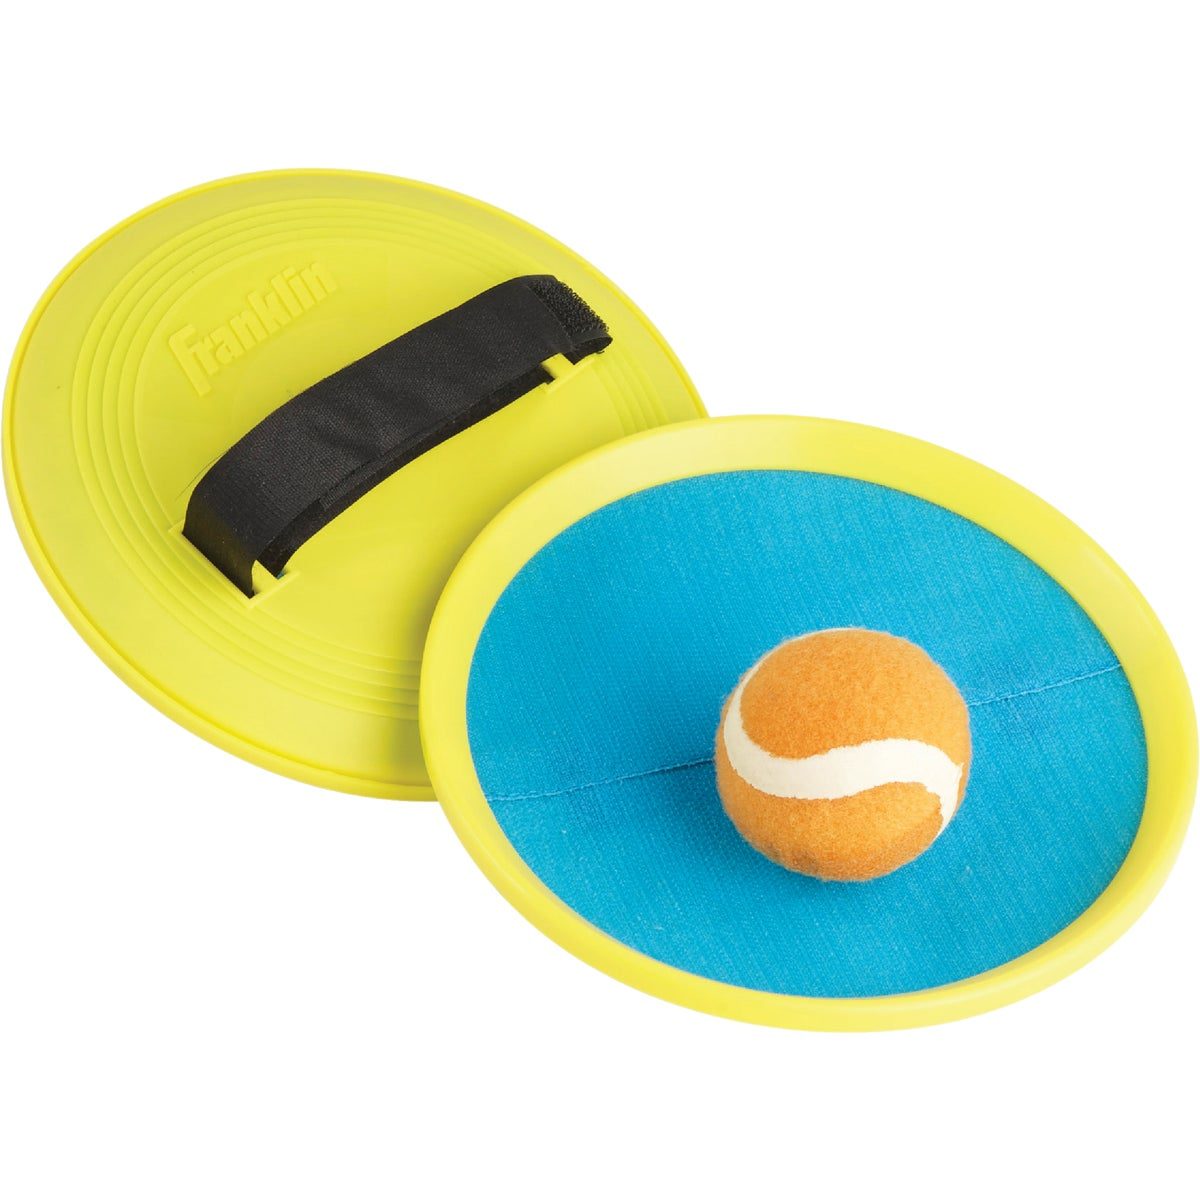 THROW AND STICK GAME - 52613 by Franklin Sports